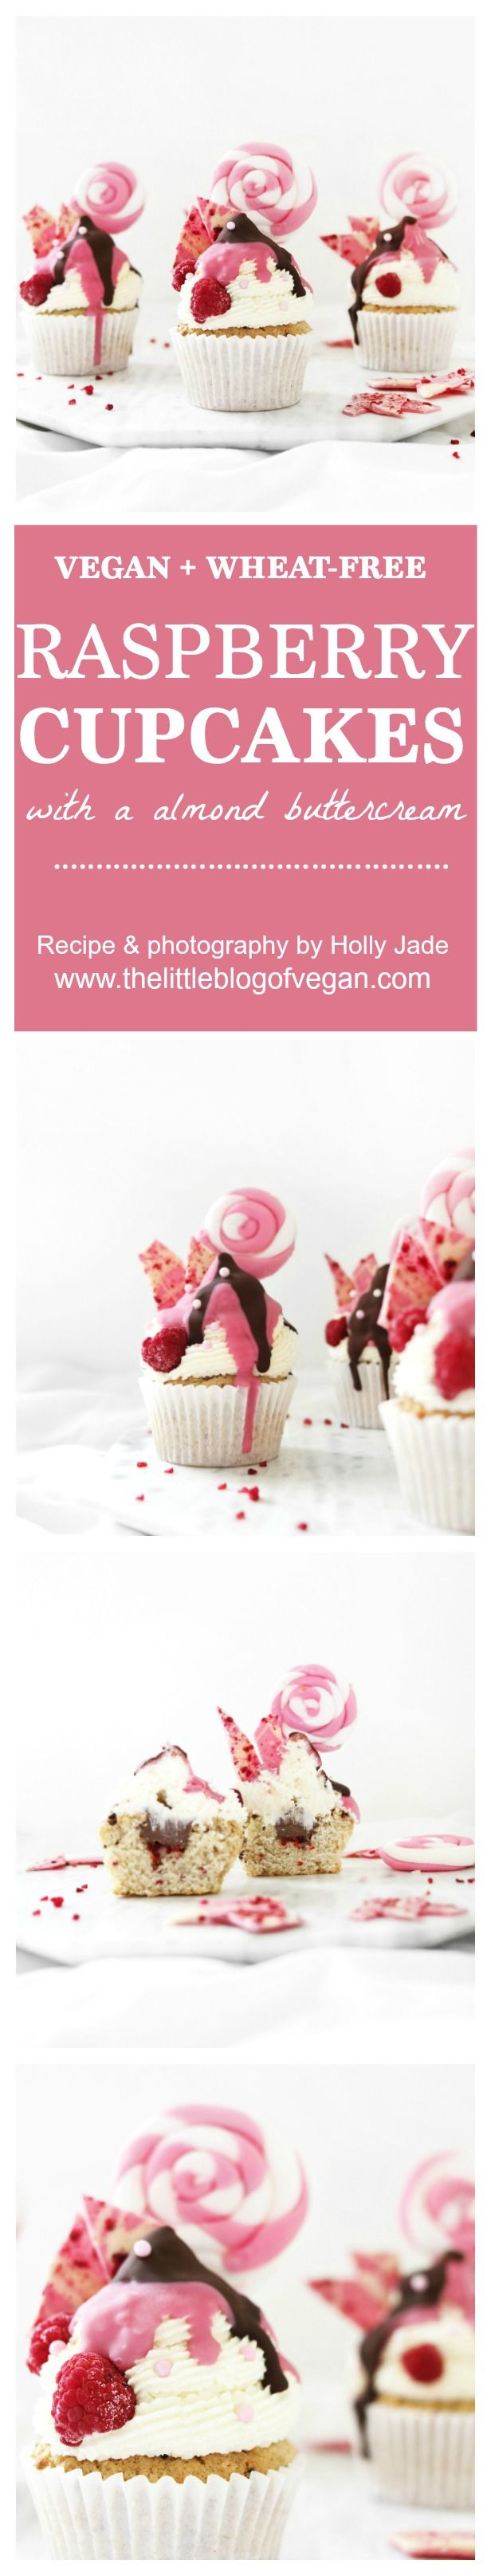 Delicious vegan moist & fluffy raspberry cupcakes with almond buttercream frosting, white chocolate drizzle dyed pink, dark chocolate drizzle, homemade pink raspberry chocolate bark & a homemade fondant lolly pop!